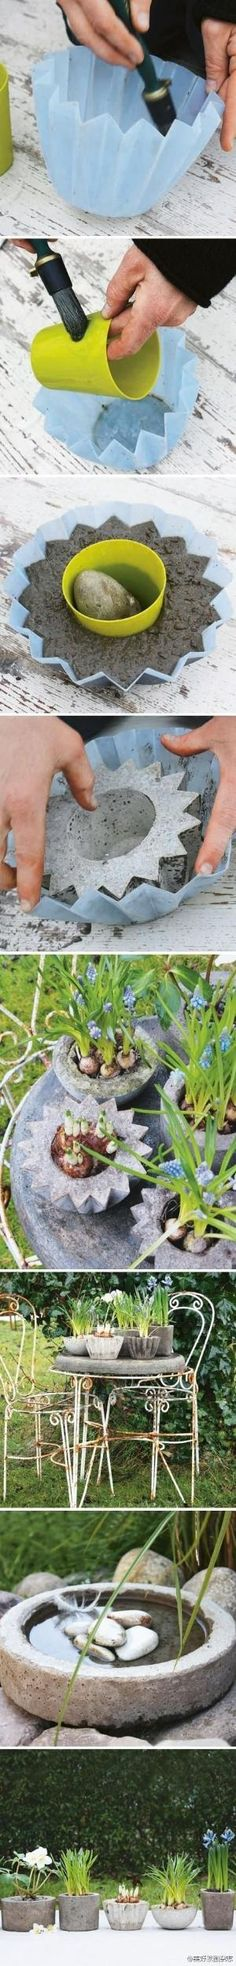 Make Your Own Concrete Planters by SAburns